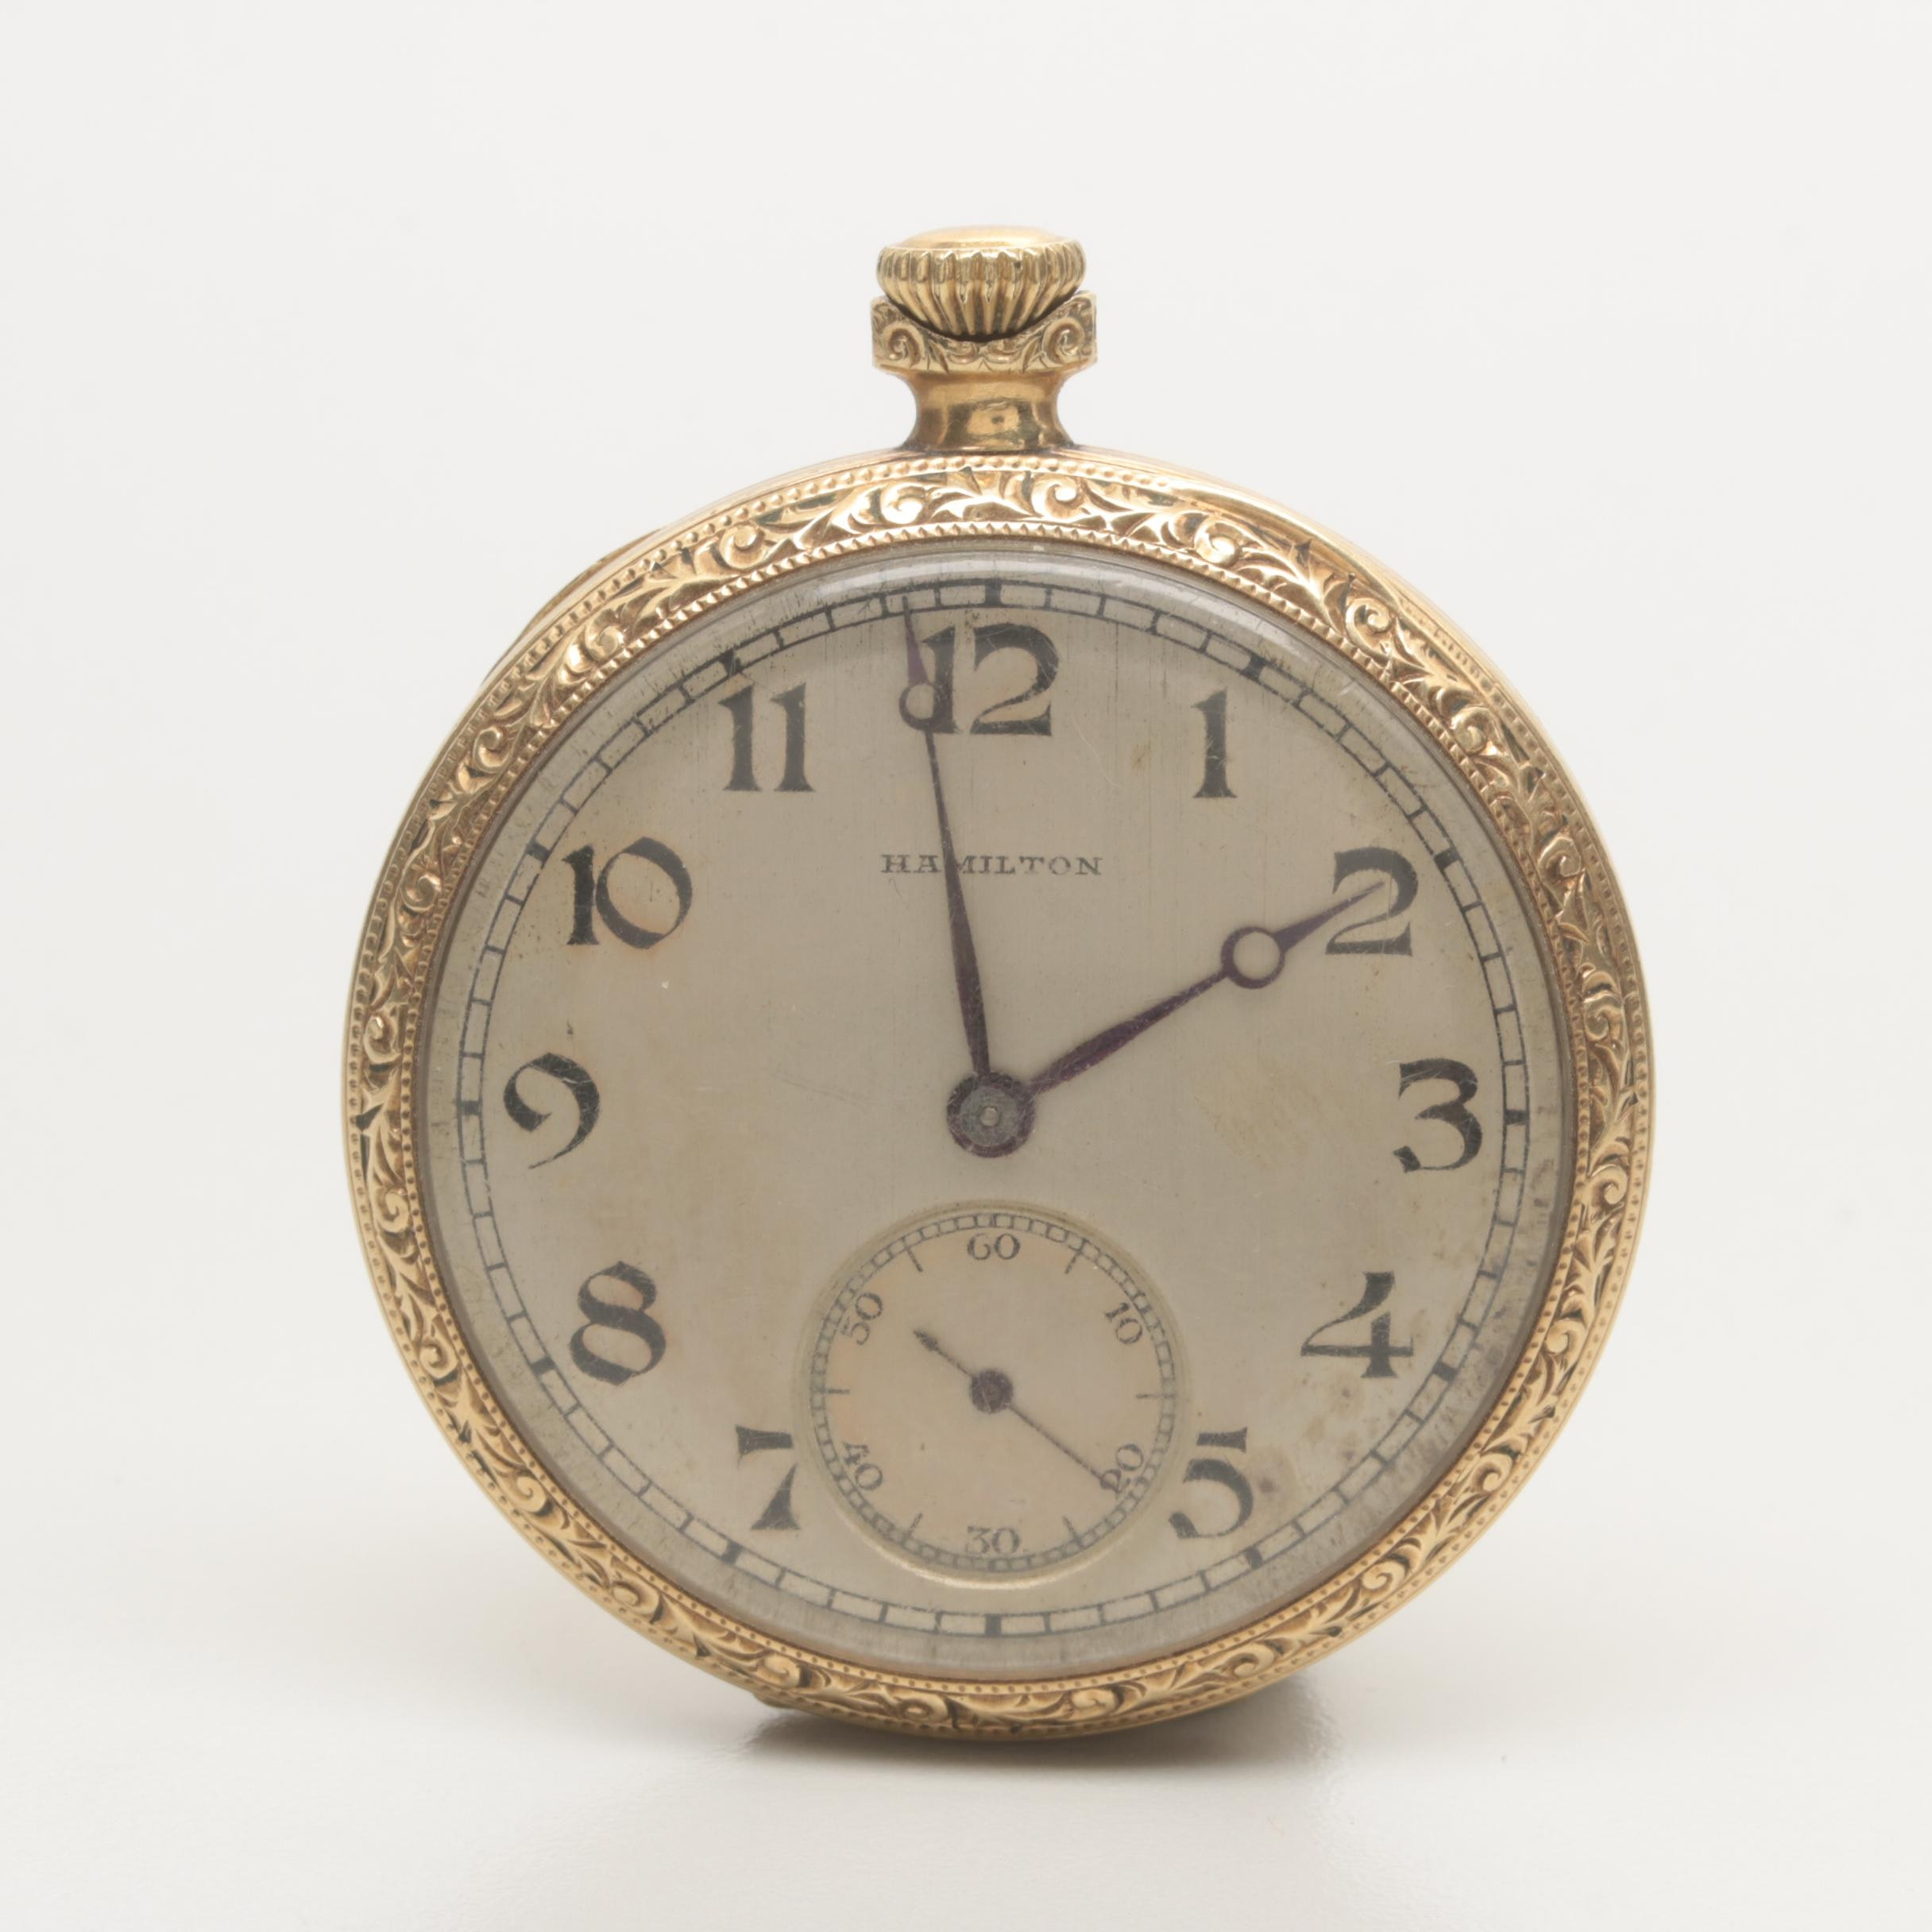 Vintage Hamilton Gold Filled Open Face Pocket Watch